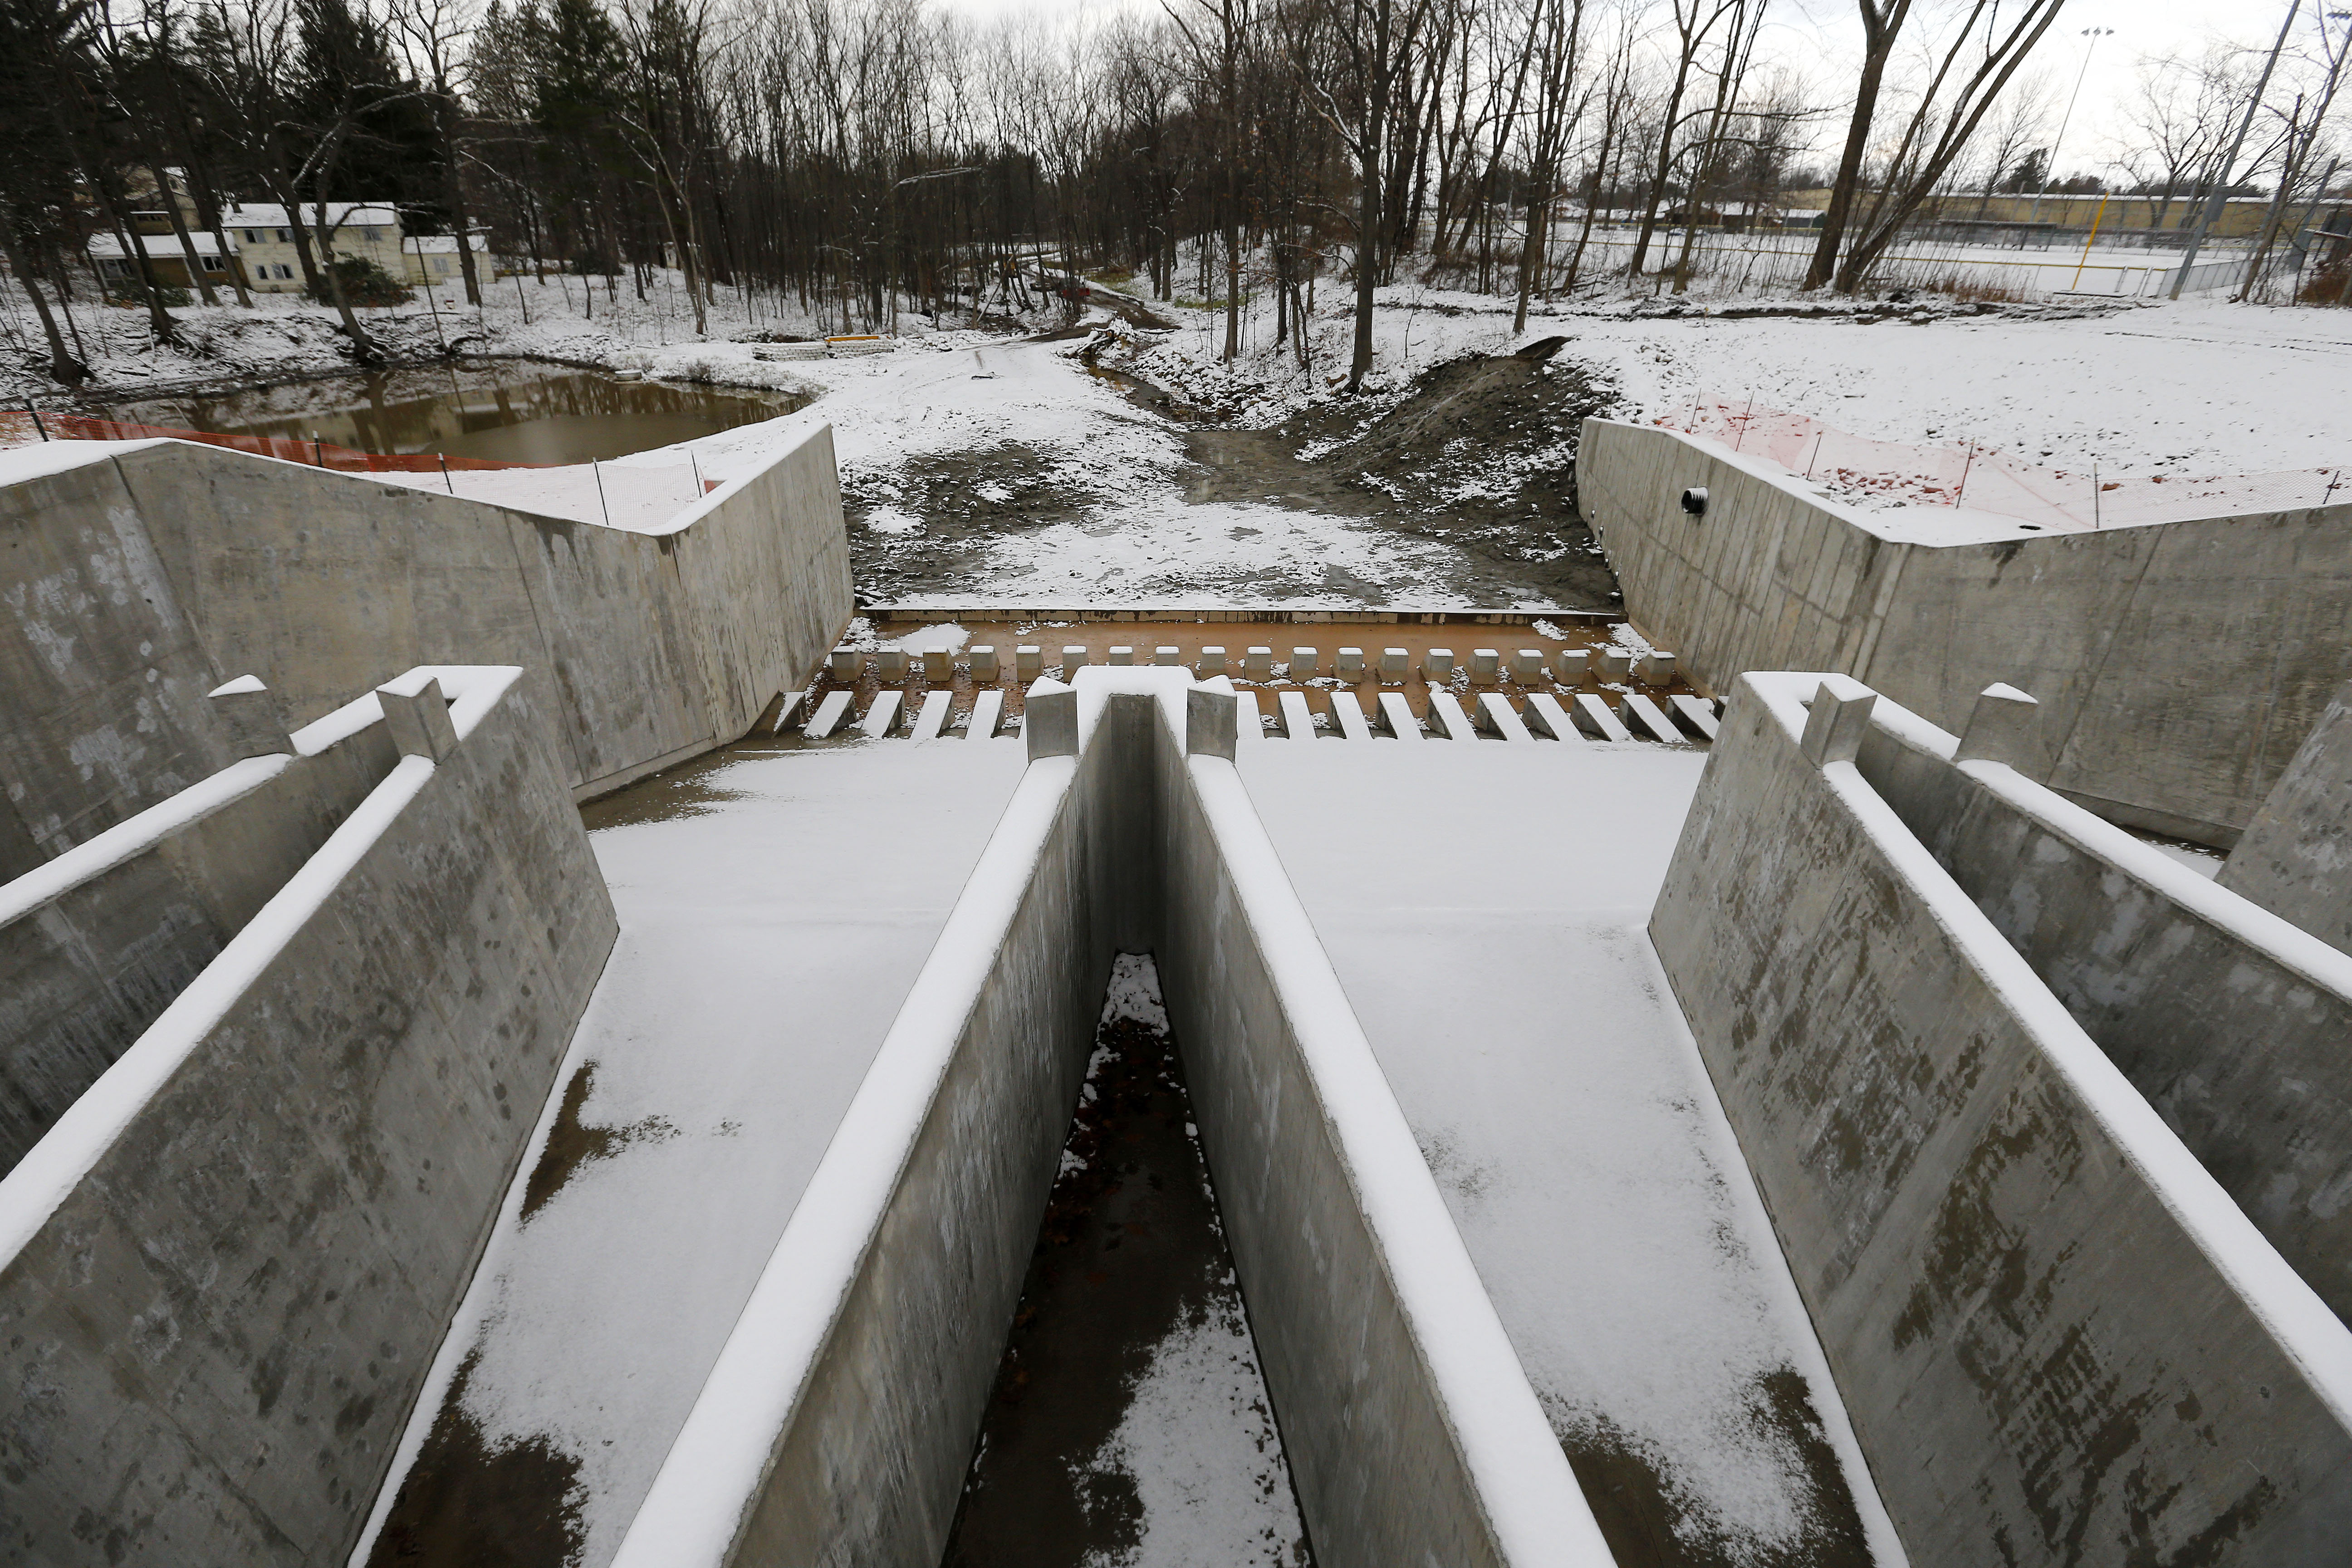 The new dam at Green Lake in Orchard Park Thursday, December 8, 2016. (Mark Mulville/The Buffalo News)